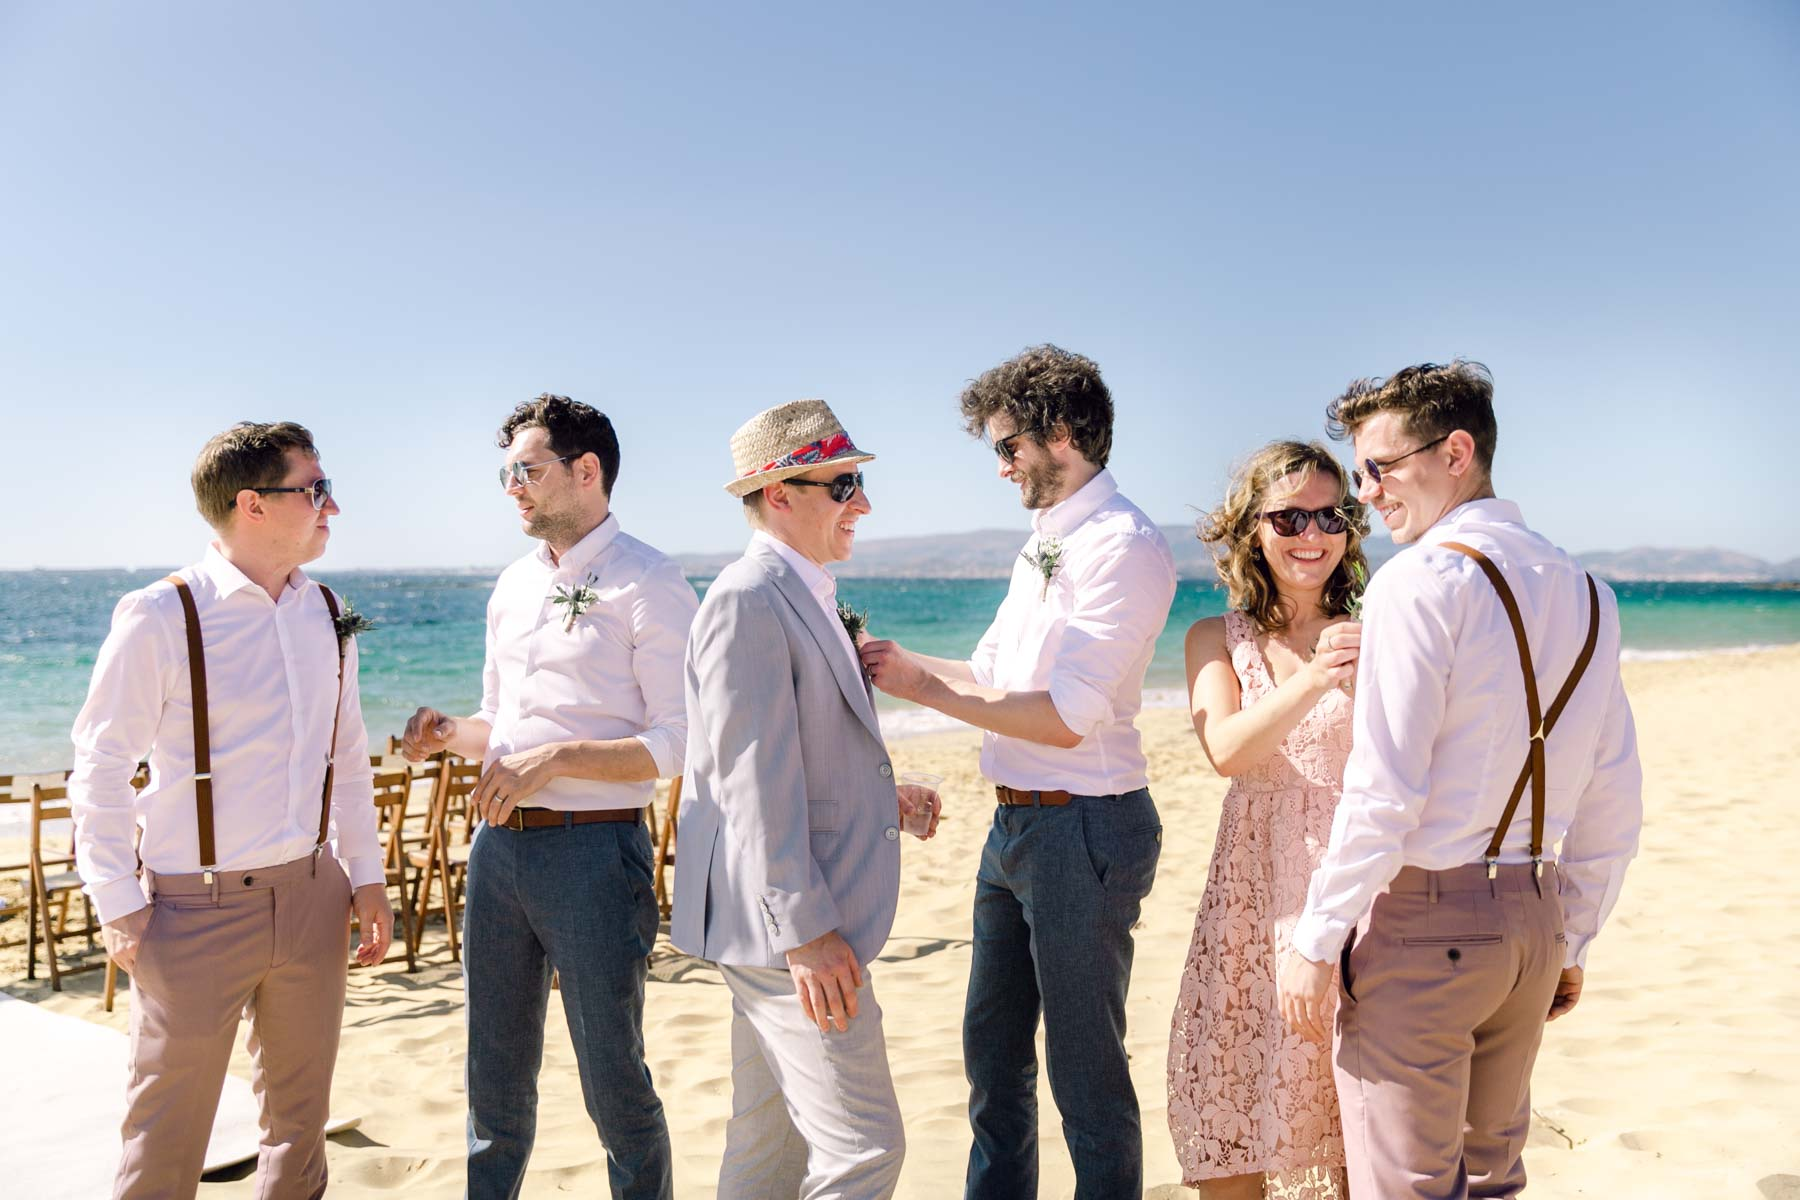 Wedding Celebration of Jayne and Ian: Wedding photography in a dreamy beach by Vicky and Nikiforos Photography Studio